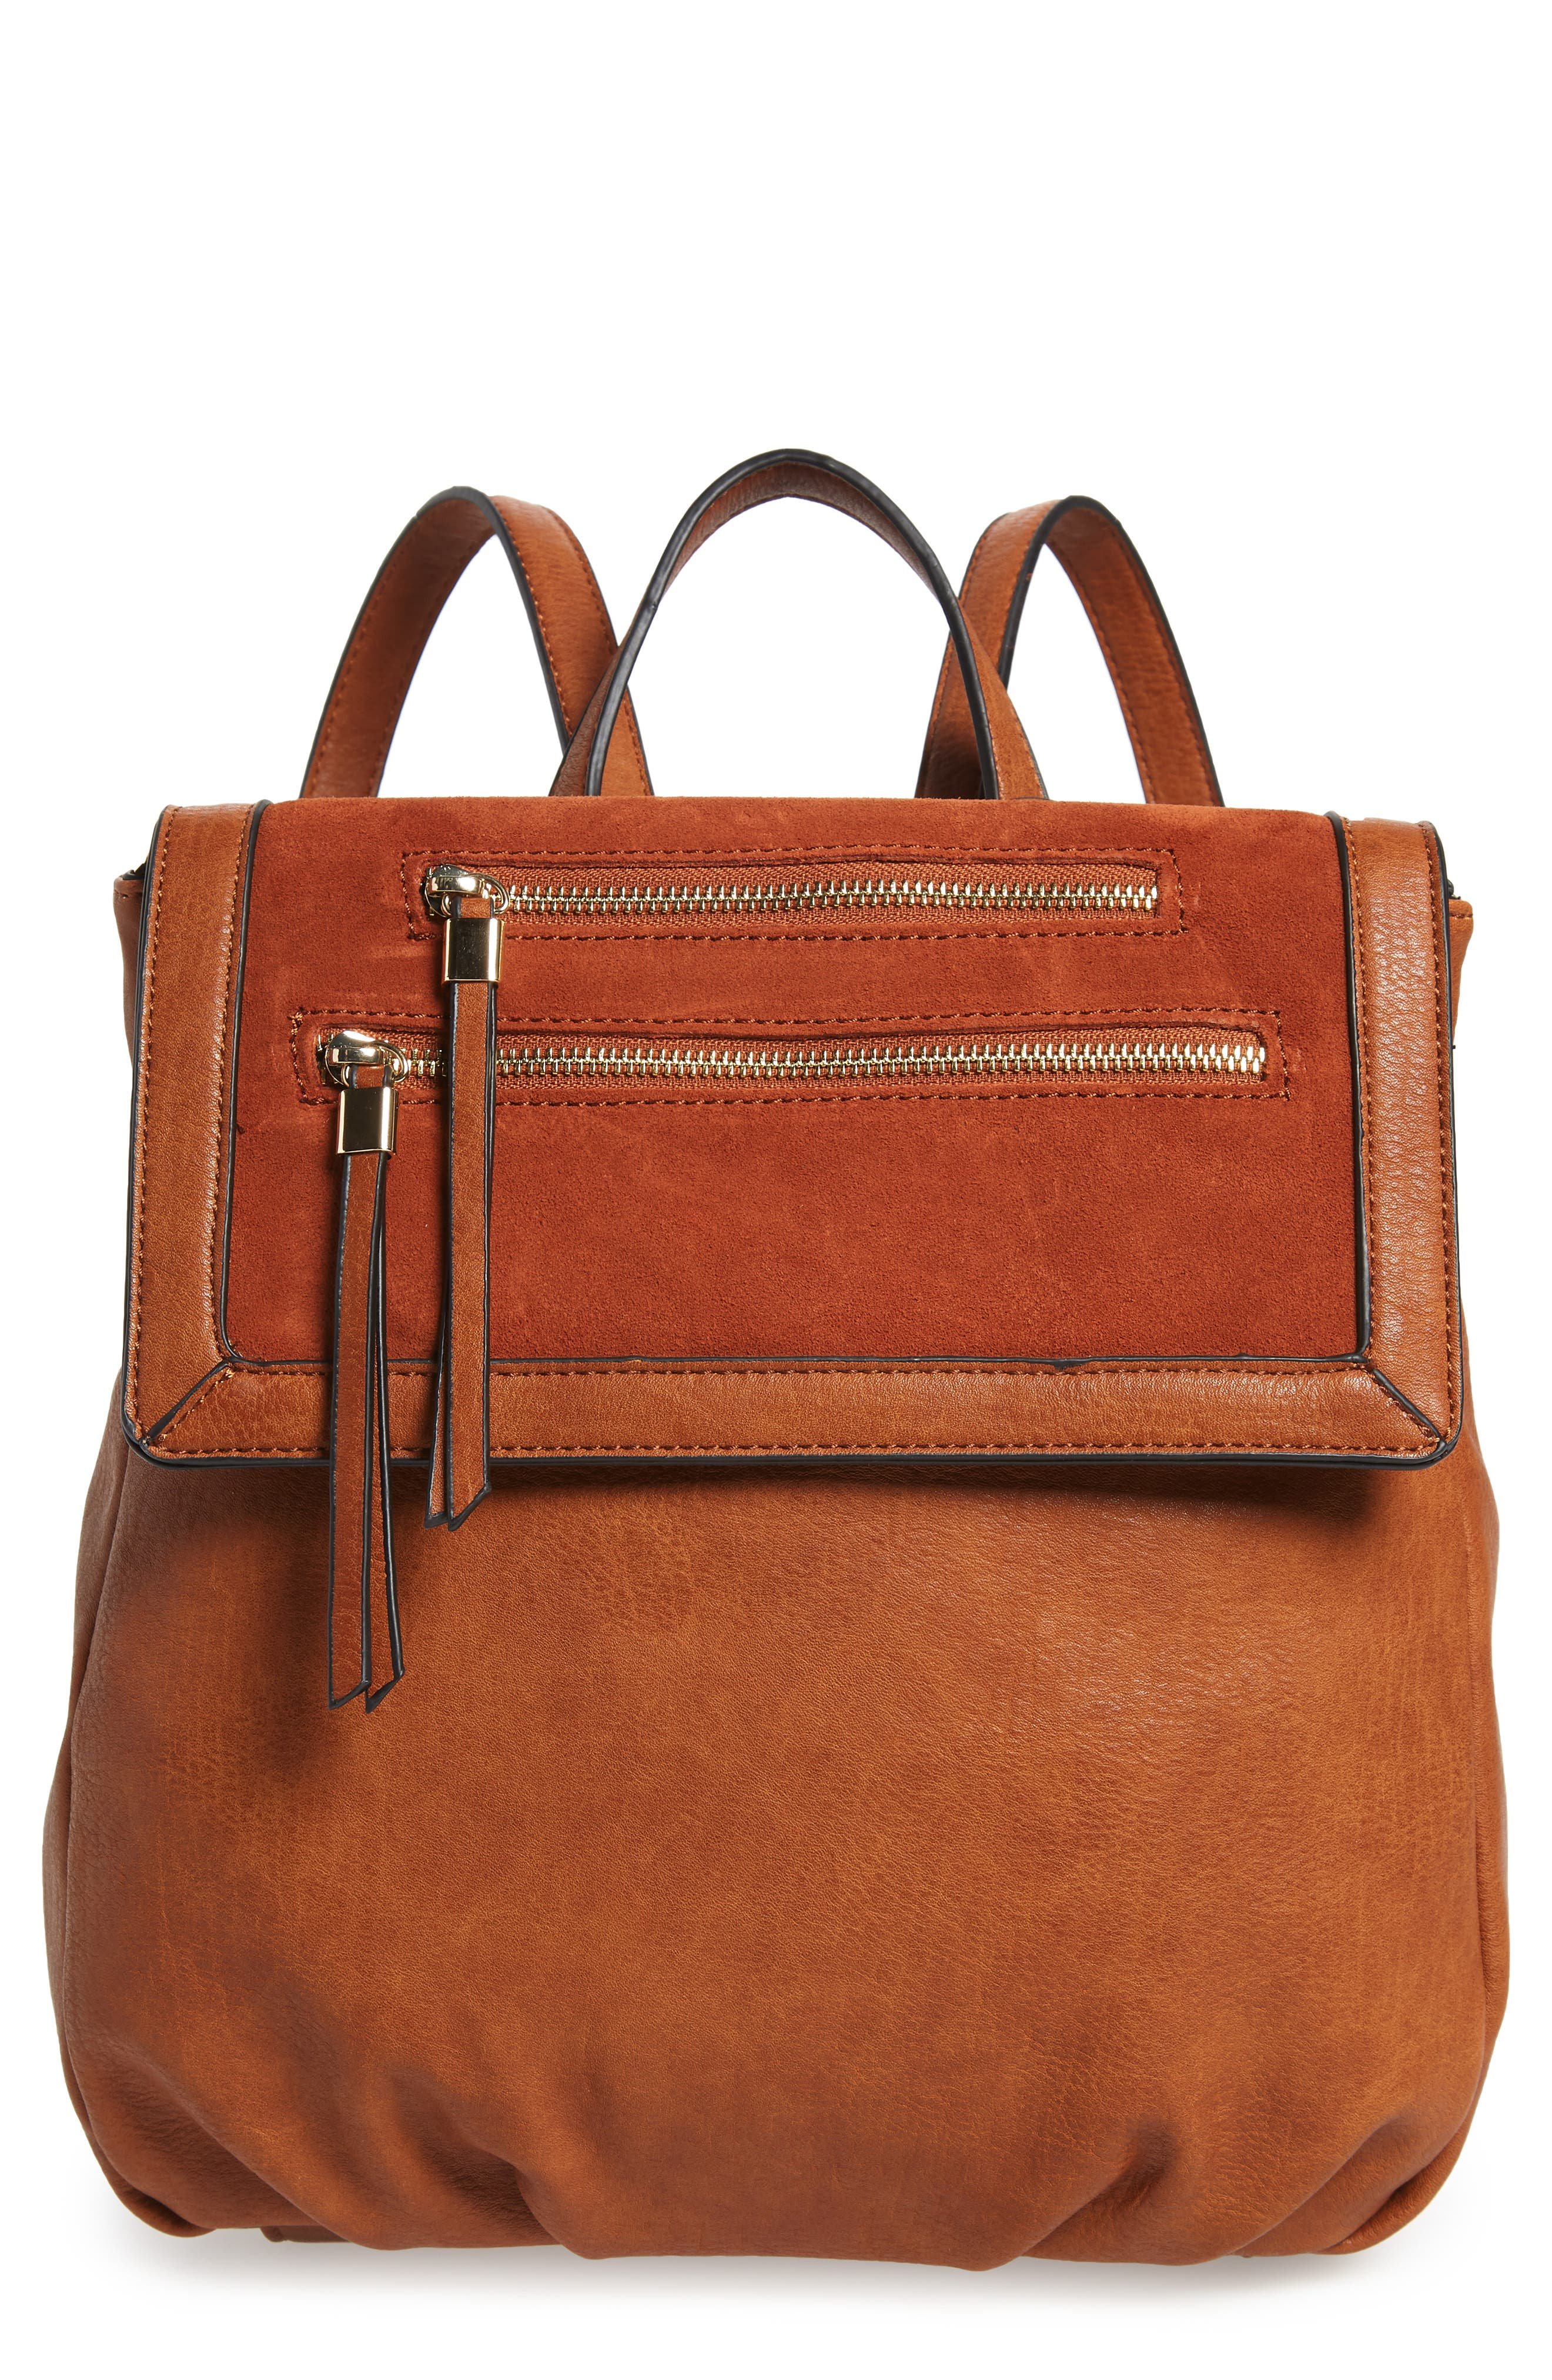 Sole Society Chele Backpack - Brown